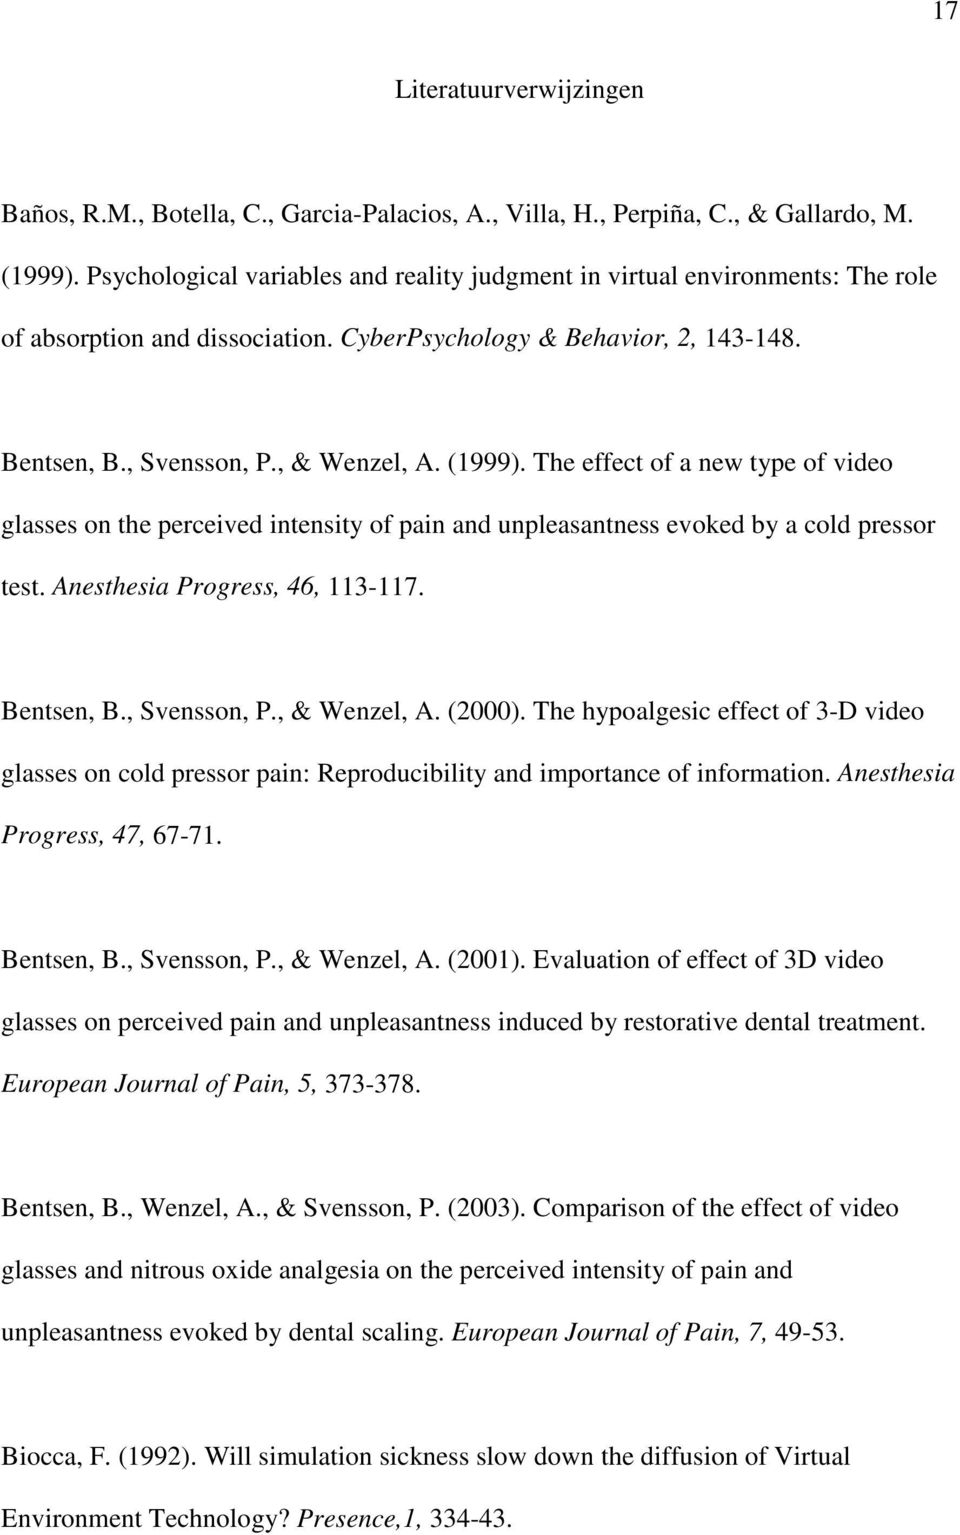 The effect of a new type of video glasses on the perceived intensity of pain and unpleasantness evoked by a cold pressor test. Anesthesia Progress, 46, 113-117. Bentsen, B., Svensson, P., & Wenzel, A.